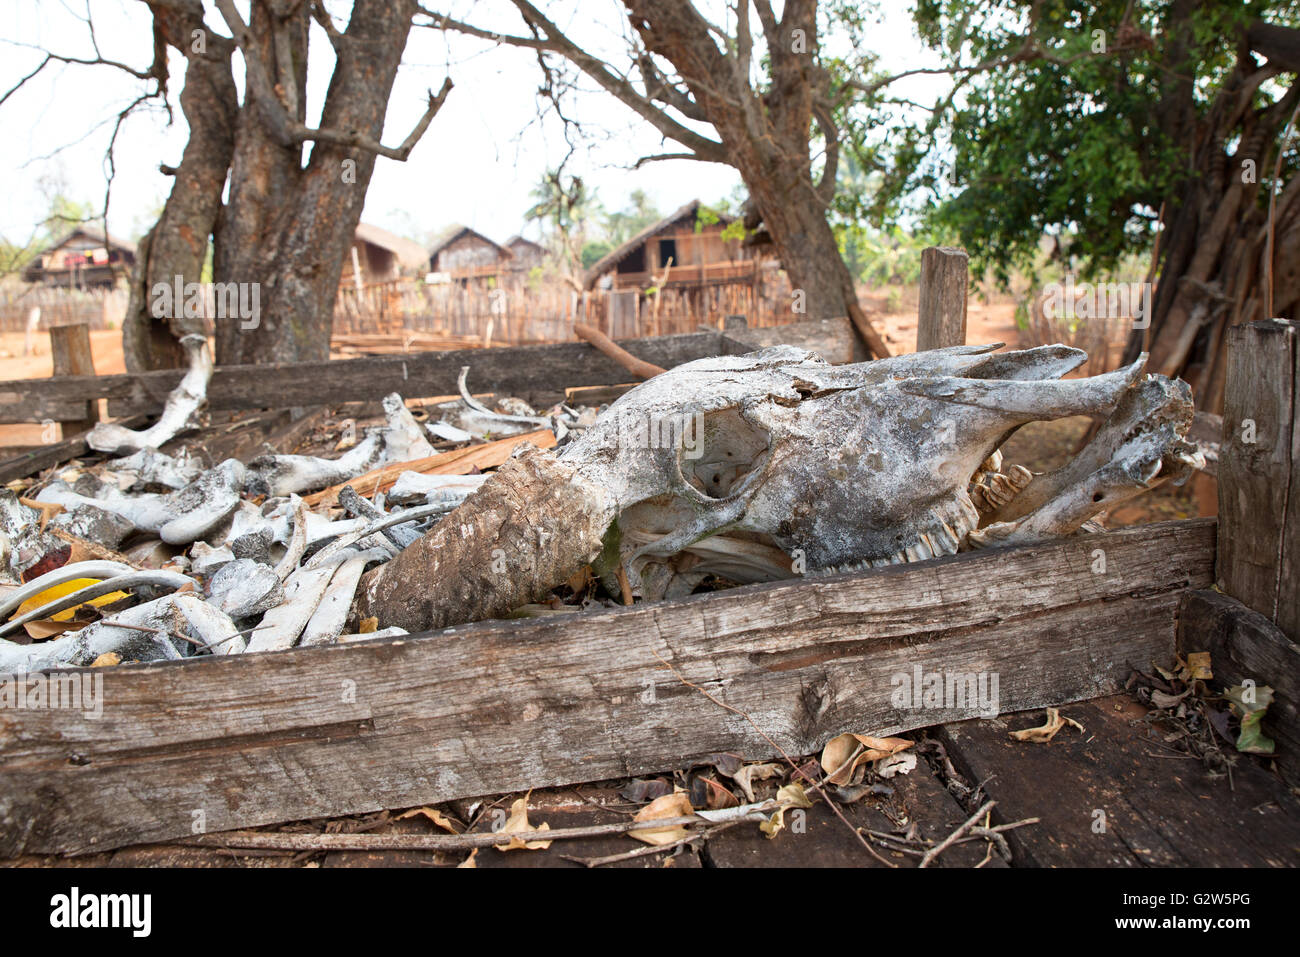 Remains of a dead water buffalo used for animist rituals of Kayah people, Dawtamakyi village, Kayah State, Myanmar - Stock Image